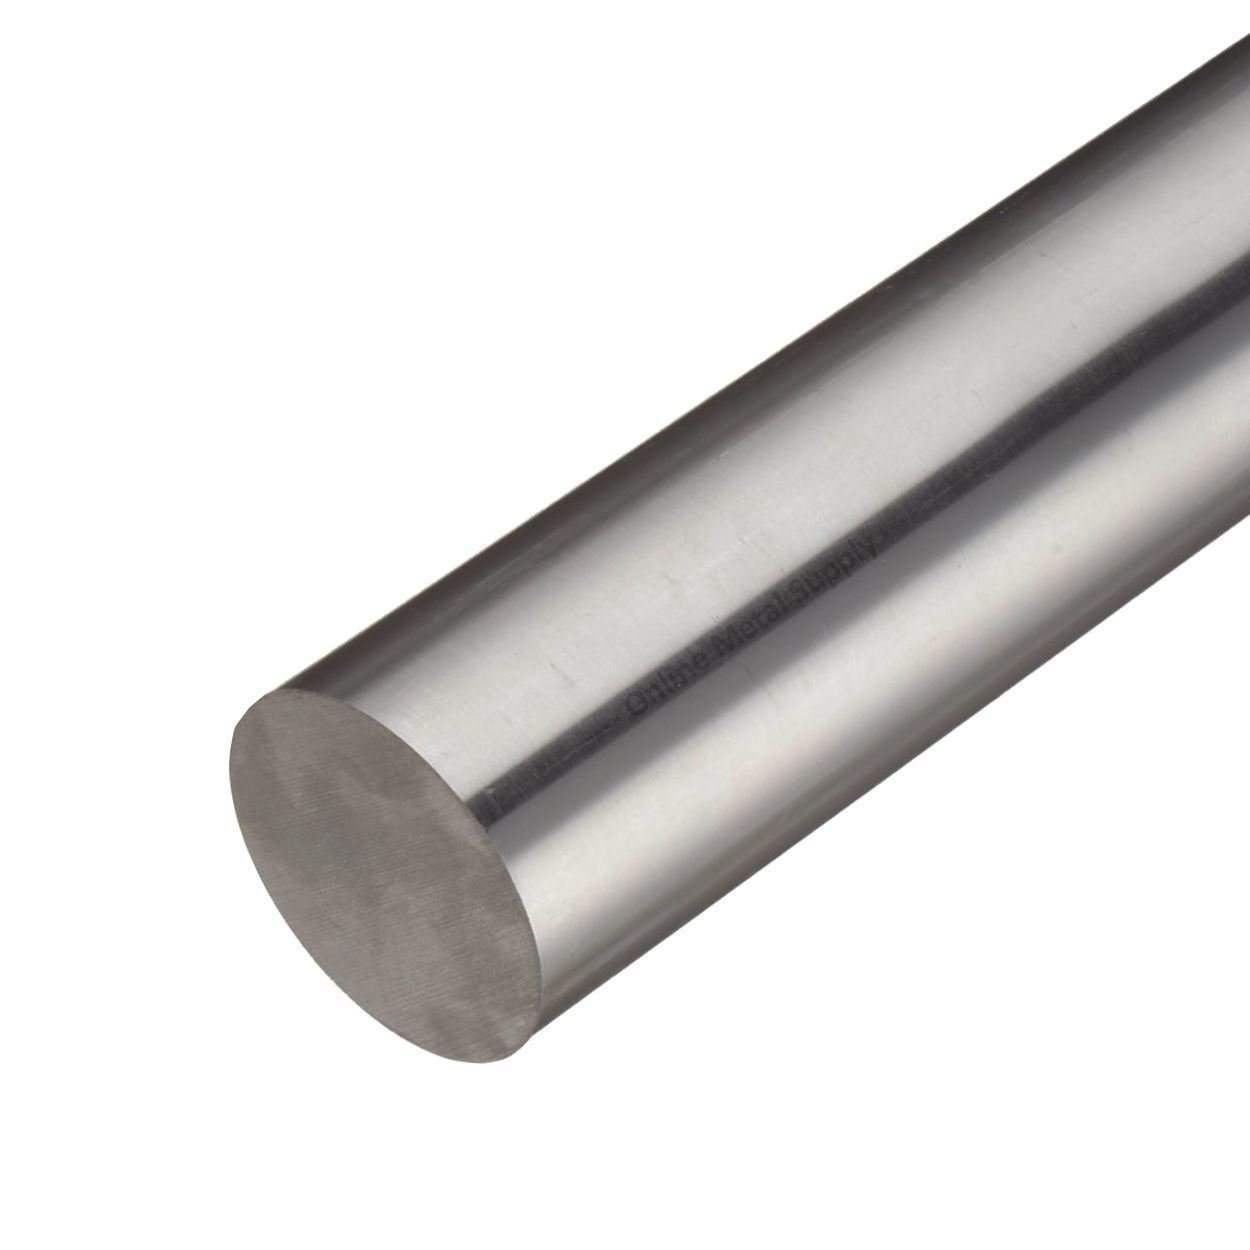 Online Metal Supply 440C Stainless Steel Round Rod 1-1//2 inch 1.500 x 24 inches